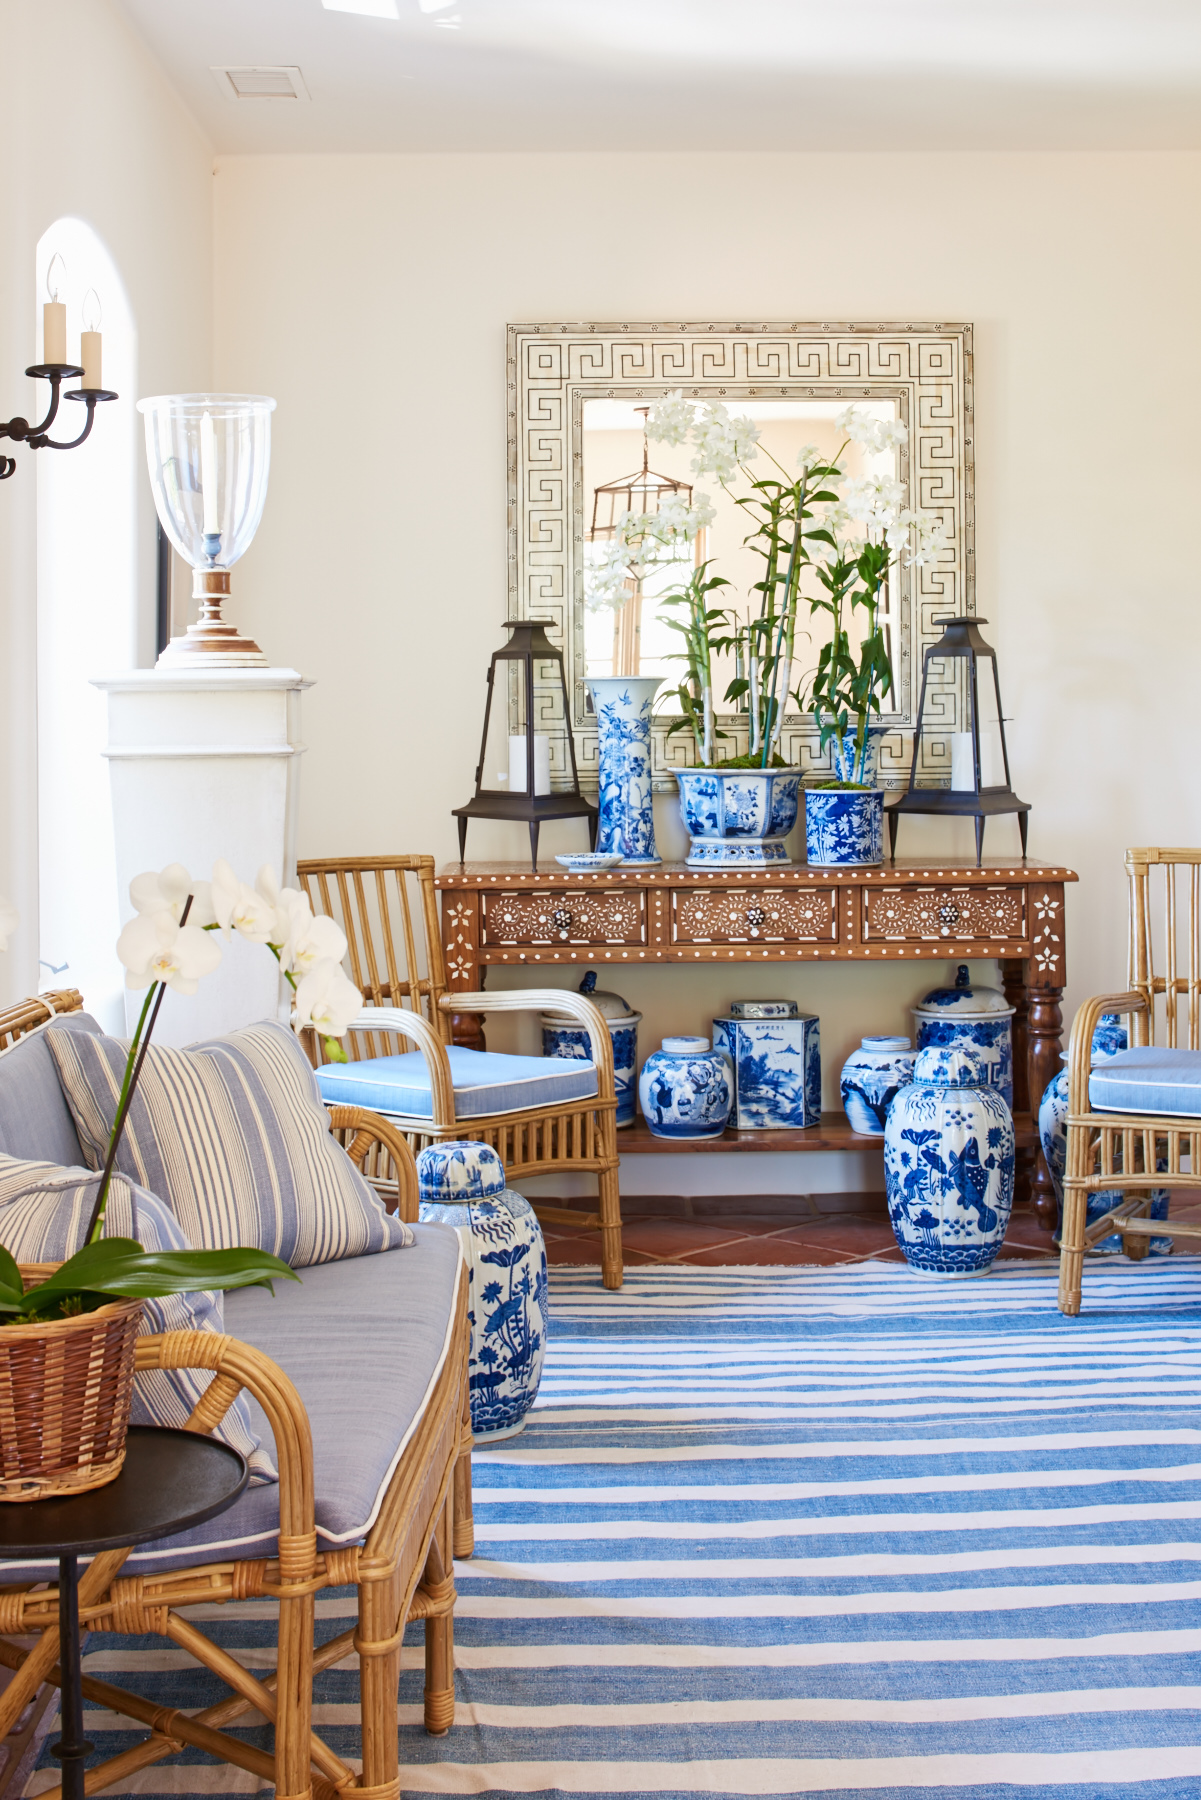 Blue seat cushions with contrast piping